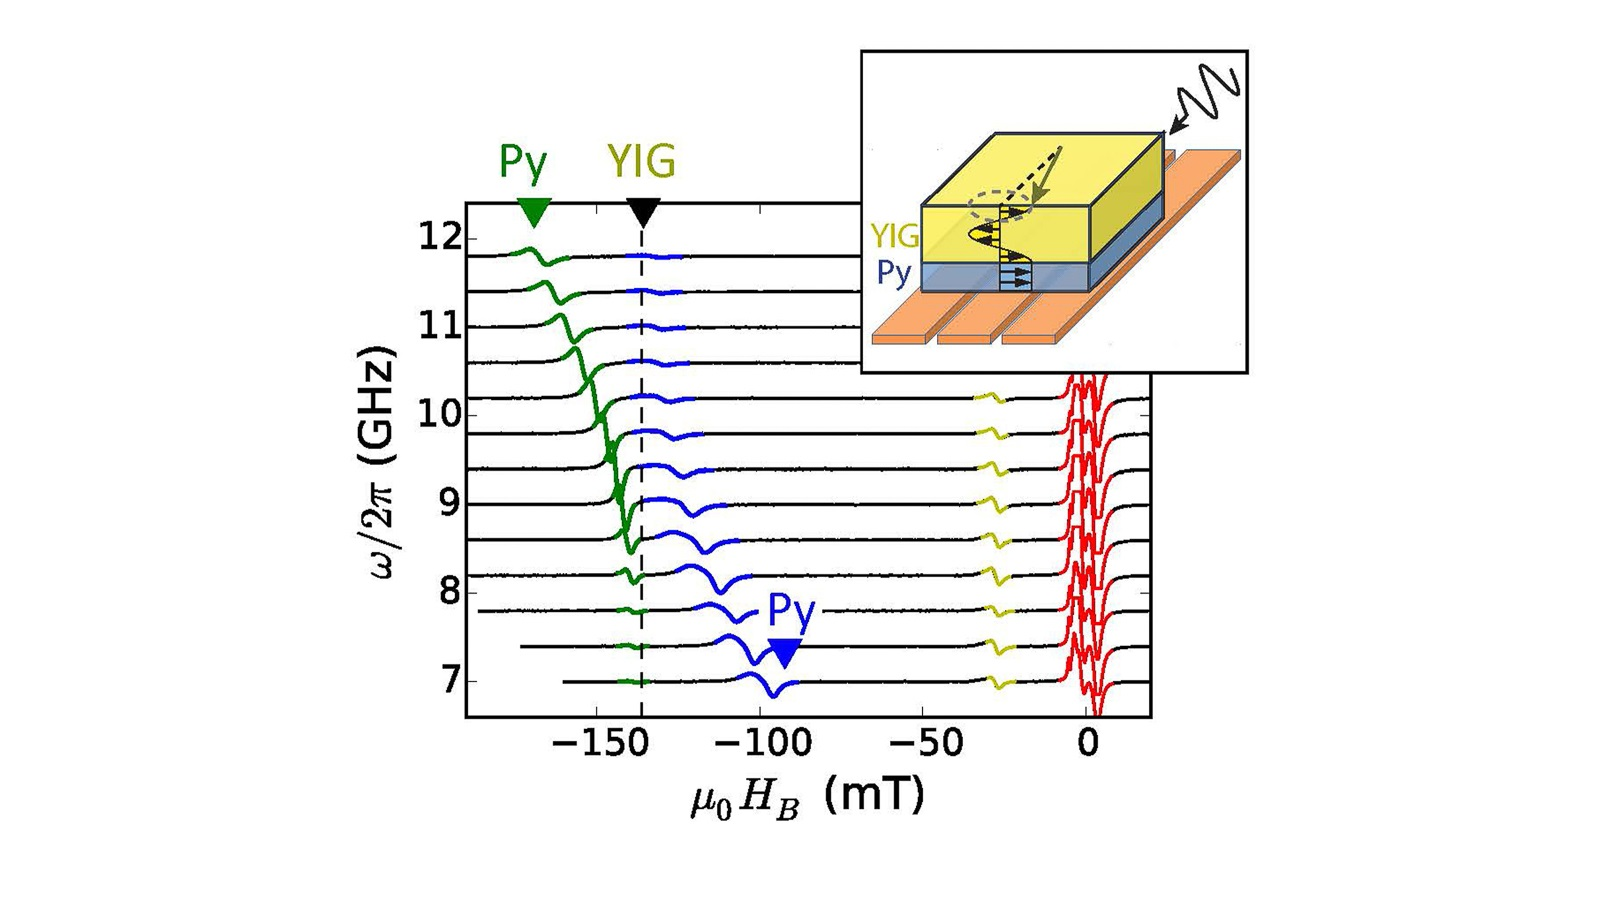 Researchers at Argonne have found a new platform for coherent information transduction with magnons in an exchange-coupled magnetic thin film bilayer. The results show new insights in both fundamental physics and device potentials for spintronics and quantum applications. (Image by Argonne National Laboratory.)